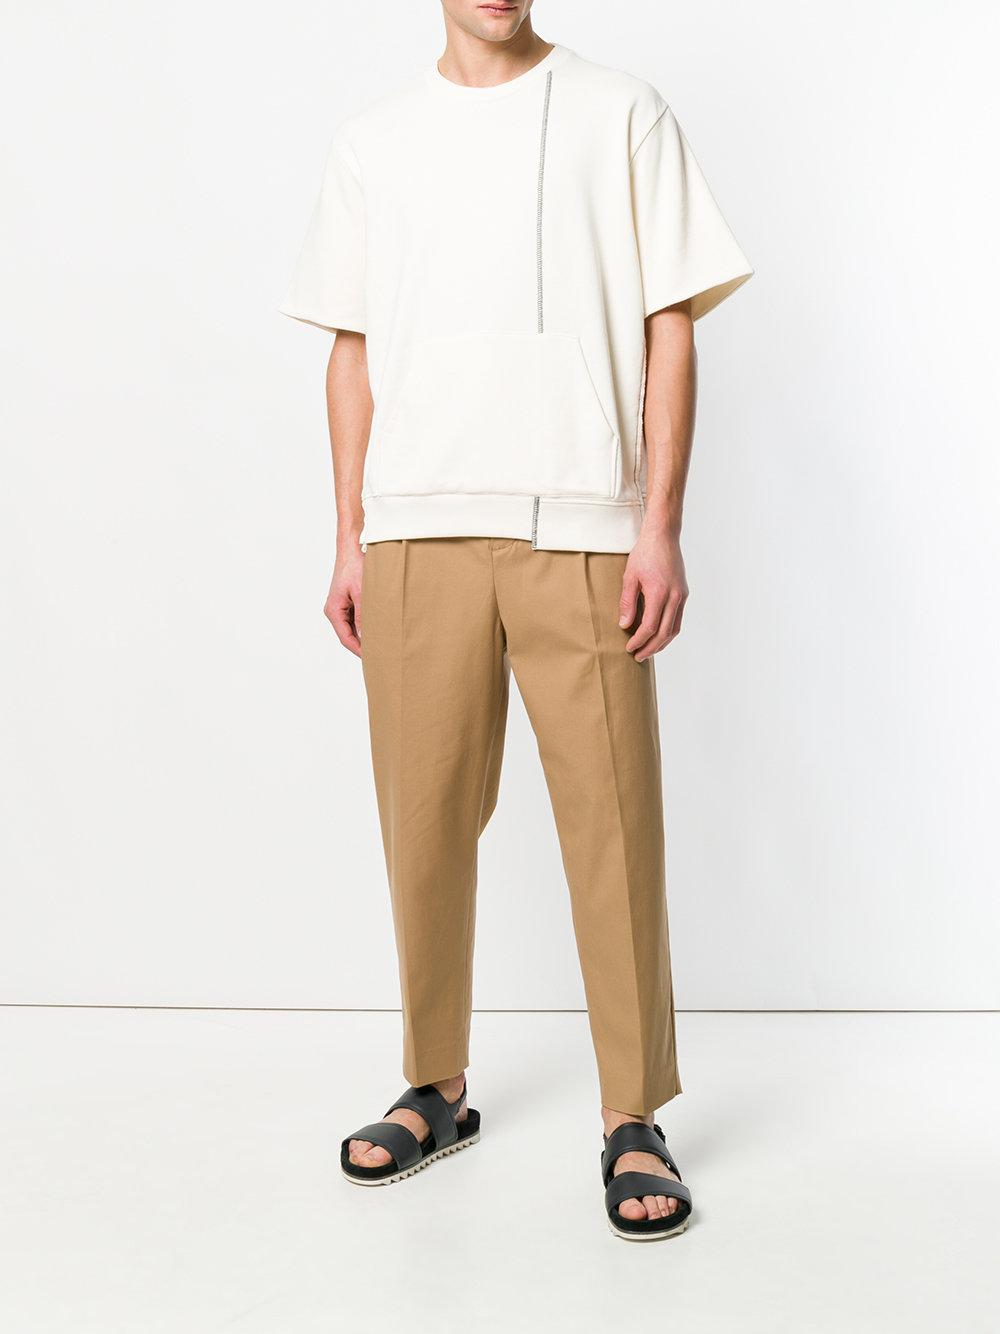 3.1 Phillip Lim Cotton High-waist Tailored Trousers in Brown for Men